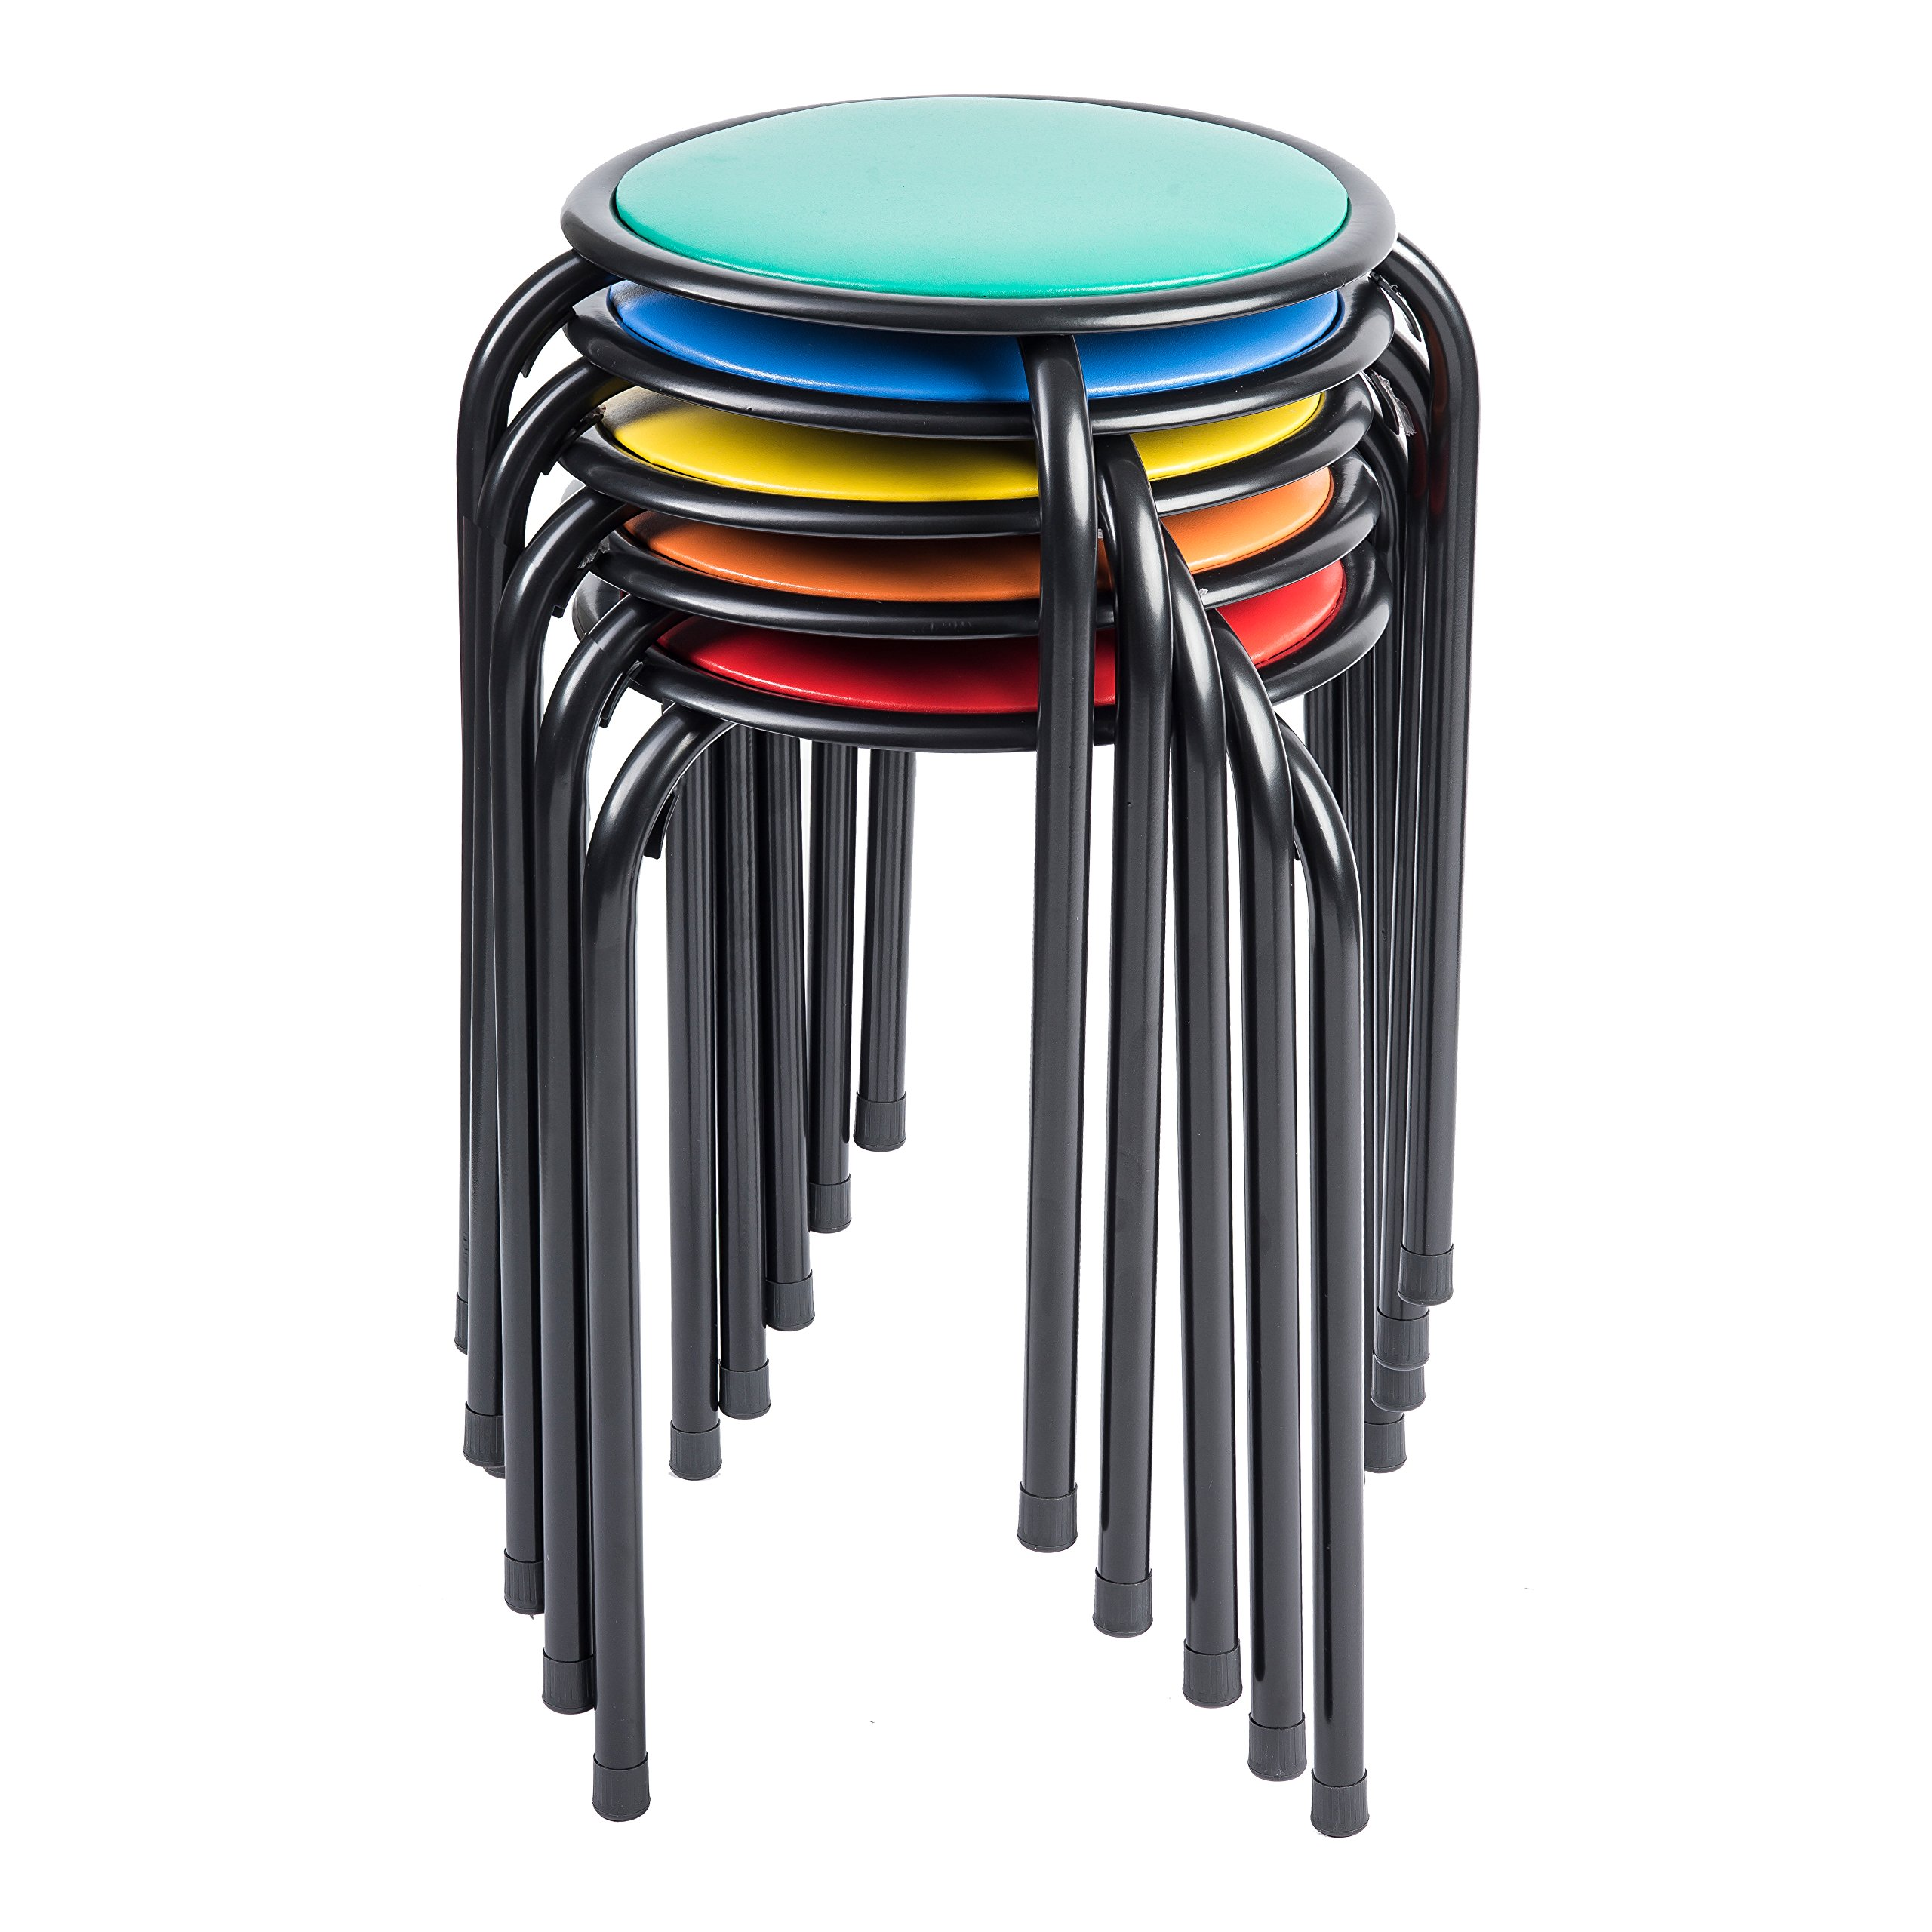 Pearington BW-6473 Kids Classroom & Home Padded Stool, Red/Blue/Green/Yellow/Orange (Pack of 5)